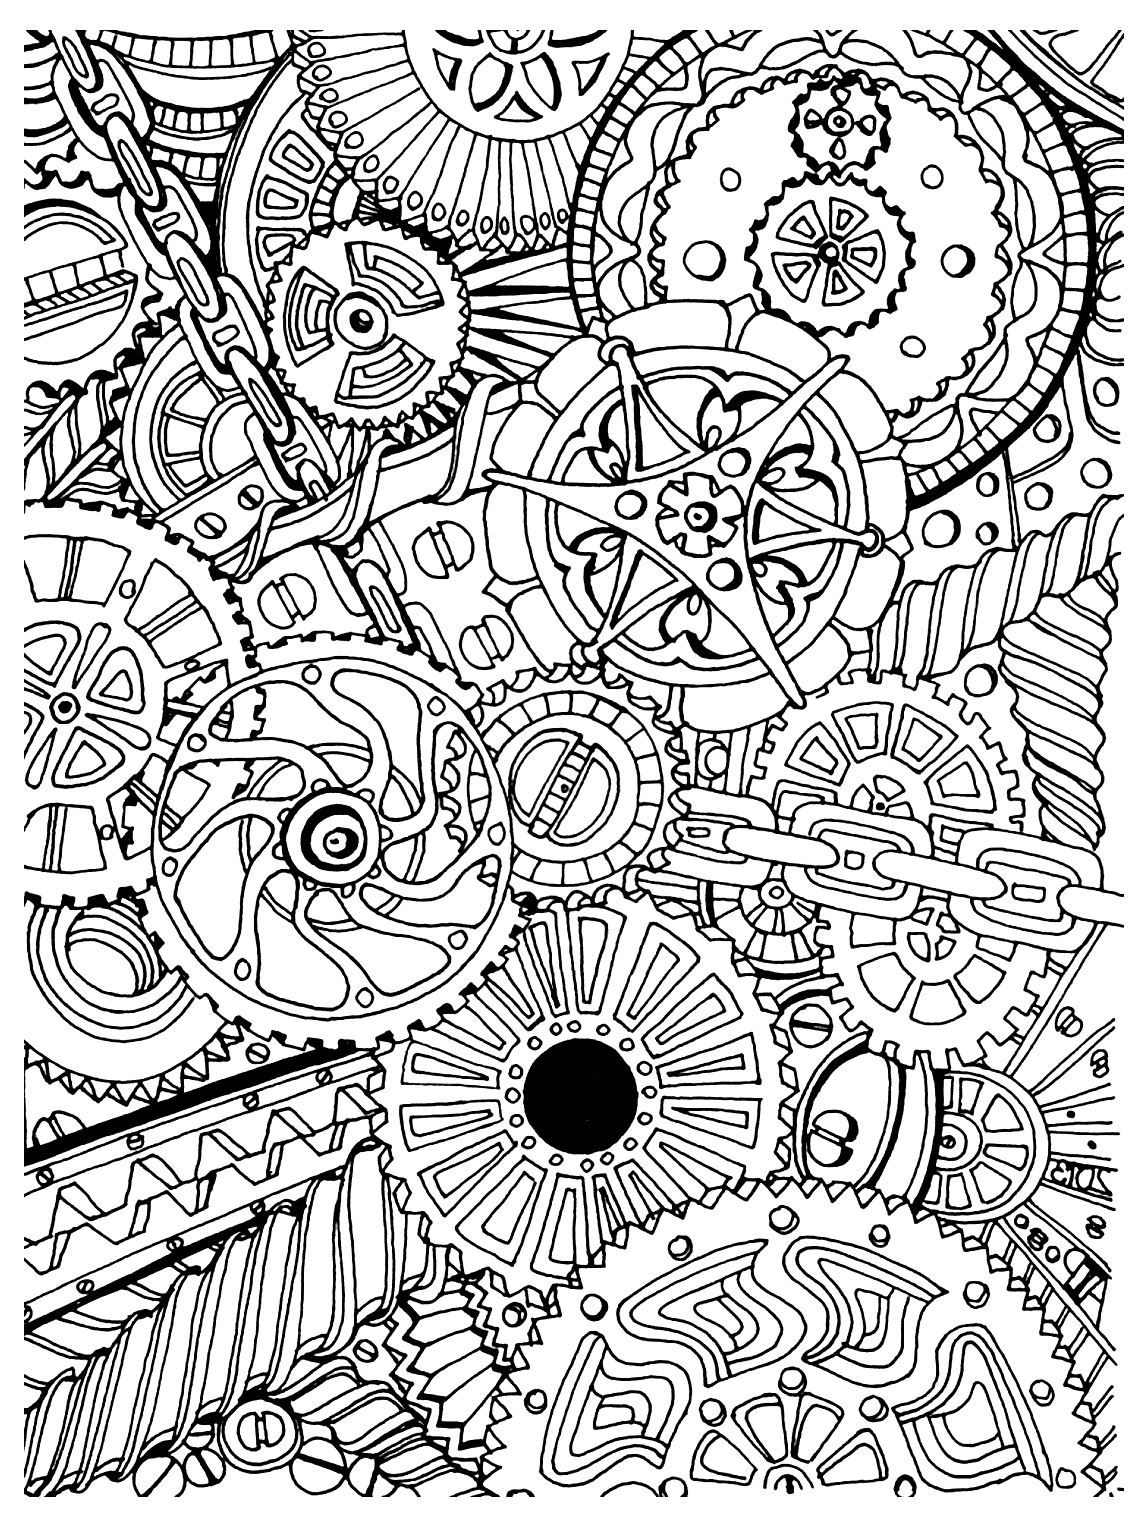 Abstract Easter Coloring Pages : To print this free coloring page «coloring adult zen anti